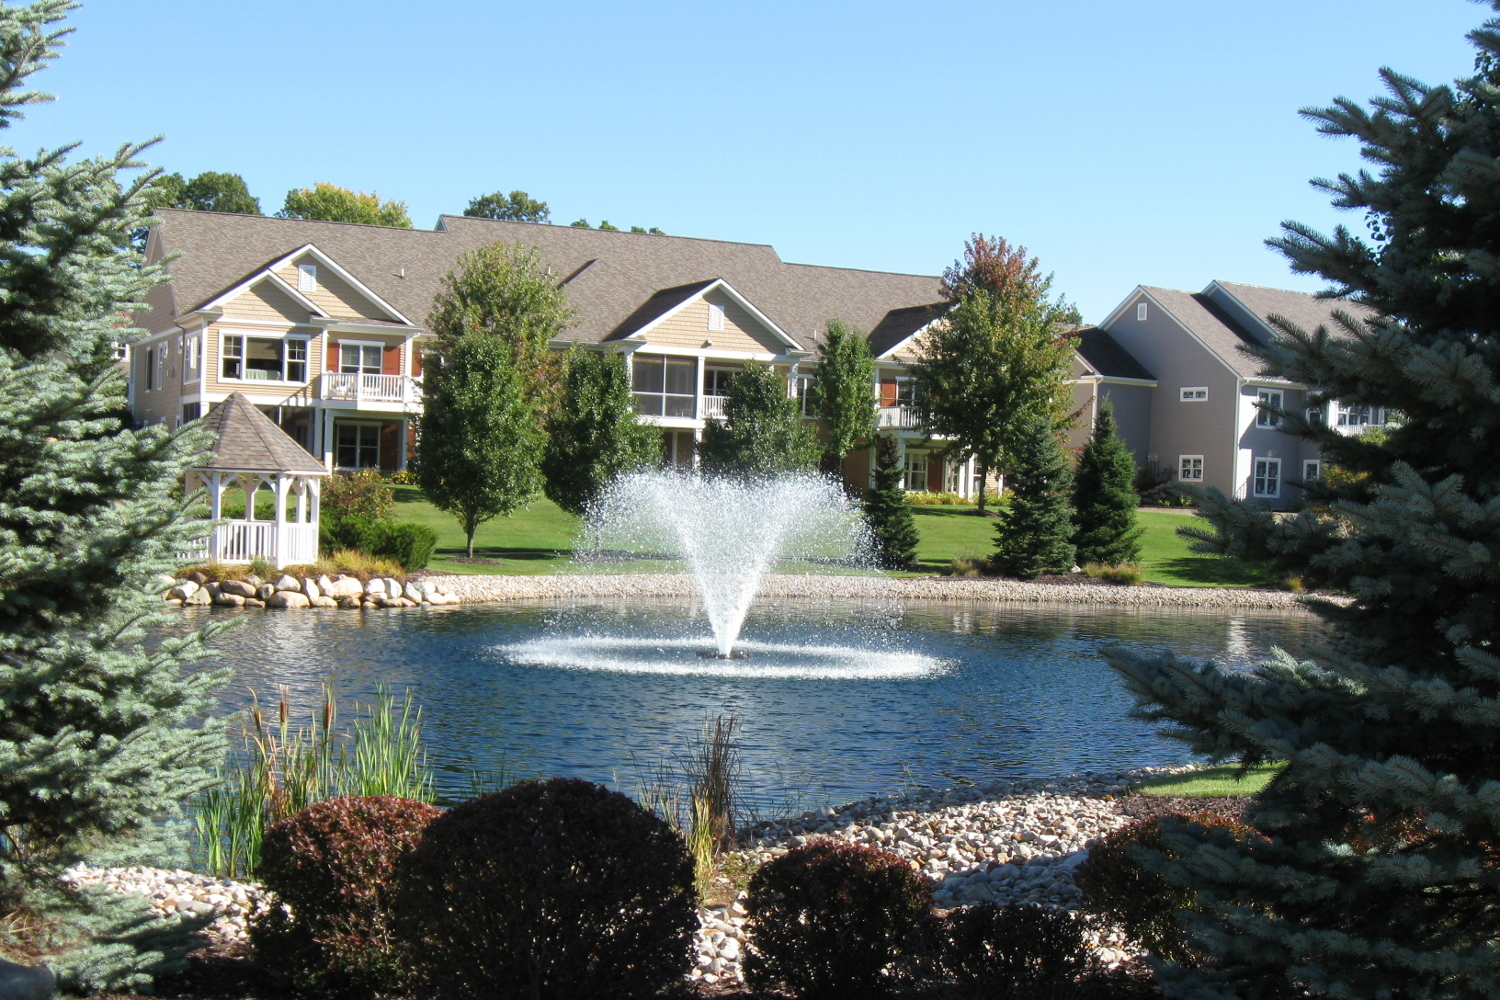 An Otterbine Aerating Fountain in a residential area